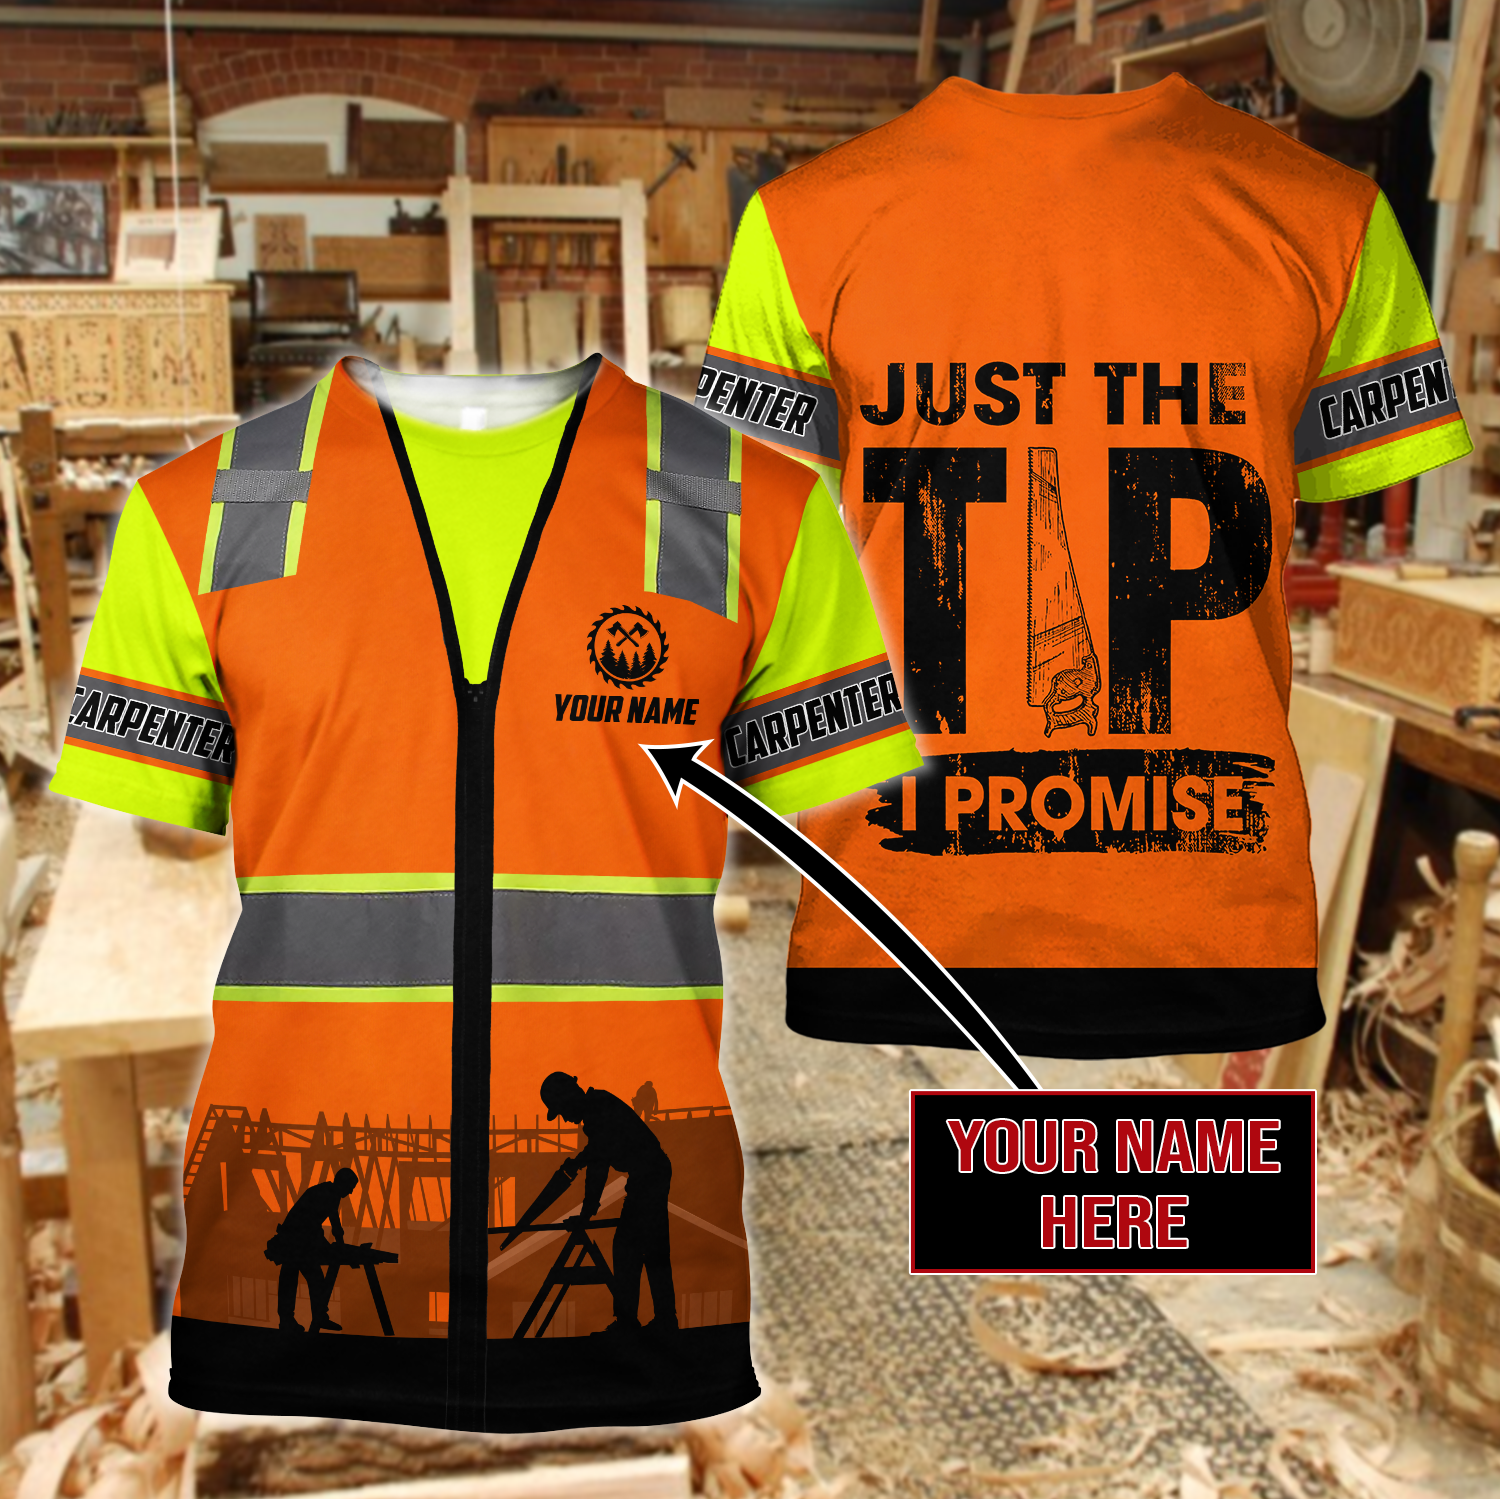 Personalized Carpenter 3D All Over Printed Unisex Shirts For Men And Women - T-Shirts / 3XL